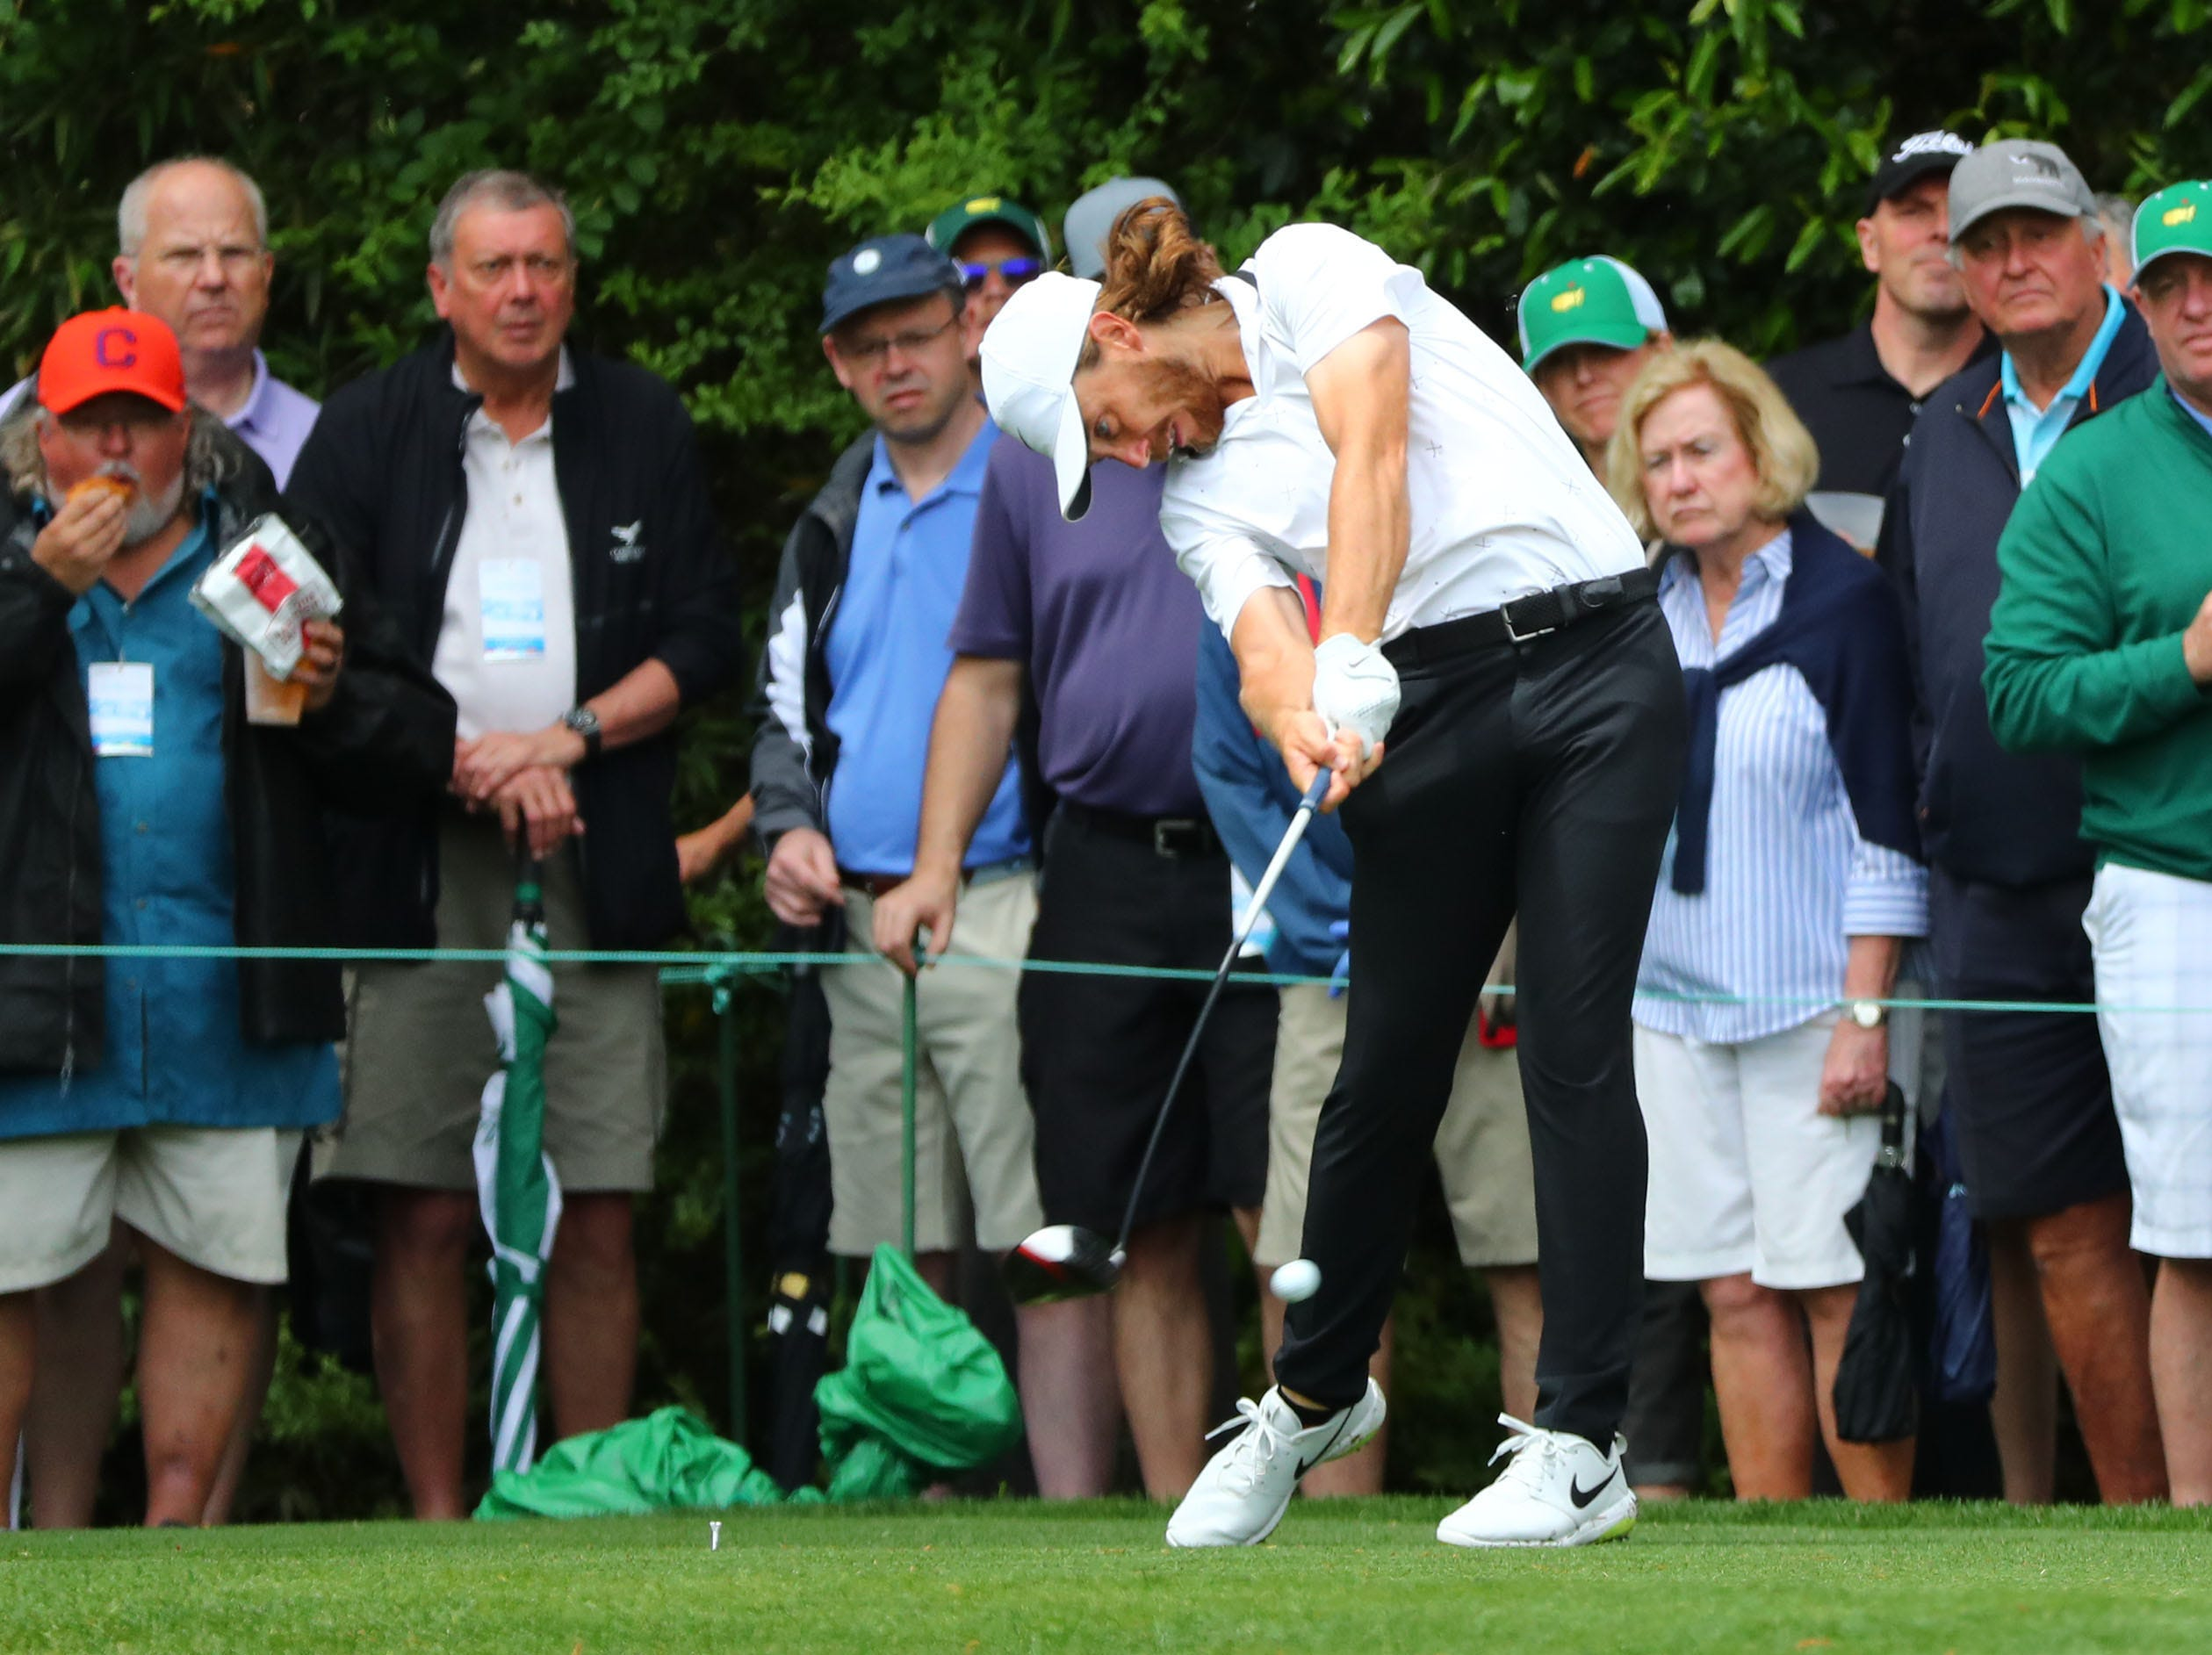 Apr 9, 2019; Augusta, GA, USA; Tommy Fleetwood of England plays his drive on the 14th hole during a practice round for The Masters golf tournament at Augusta National Golf Club. Mandatory Credit: Rob Schumacher-USA TODAY Sports